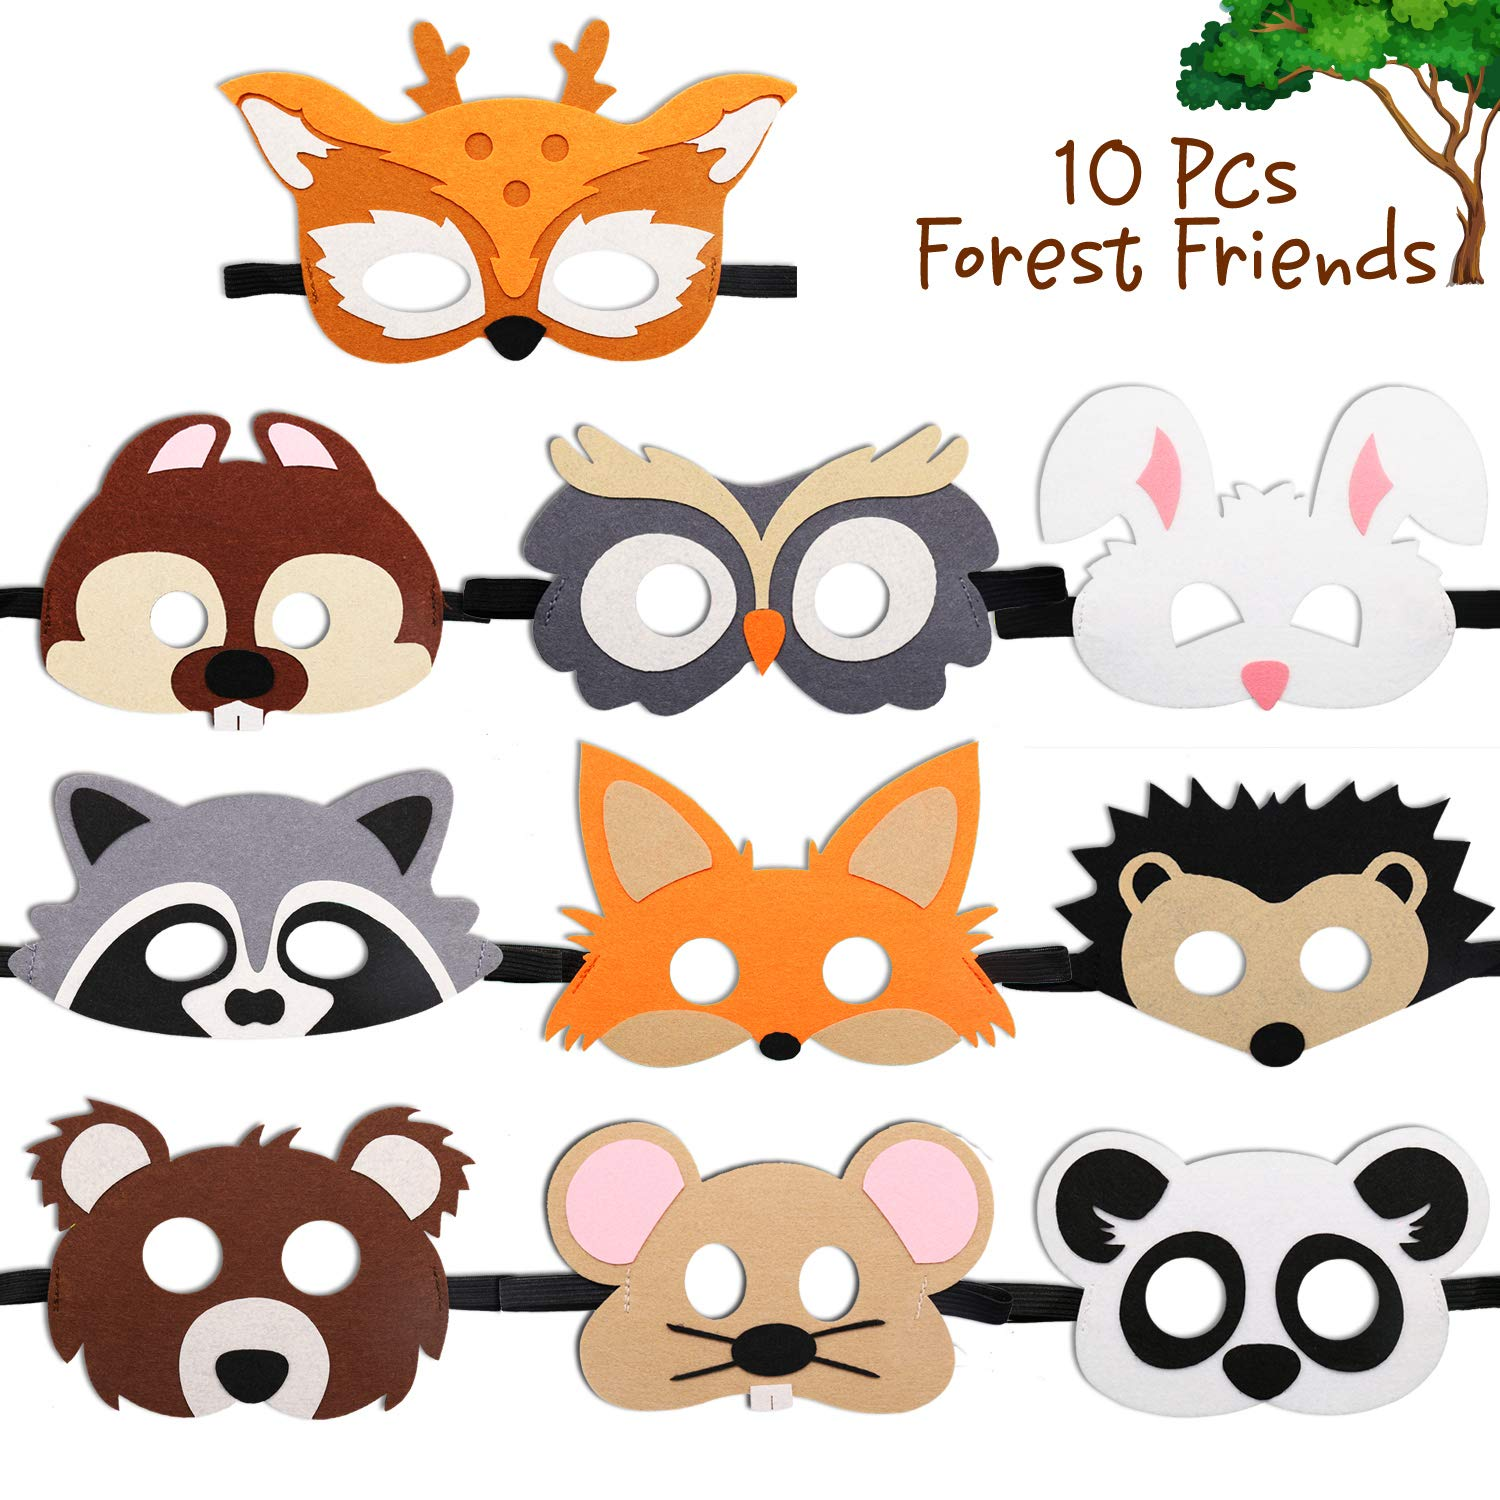 CiyvoLyeen Forest-Friends Animals Felt Masks 10 pcs Woodland Creatures Animal Cosplay Zoo Camping Themed Party Favors Supplies for Kids Boys or Girls by CiyvoLyeen